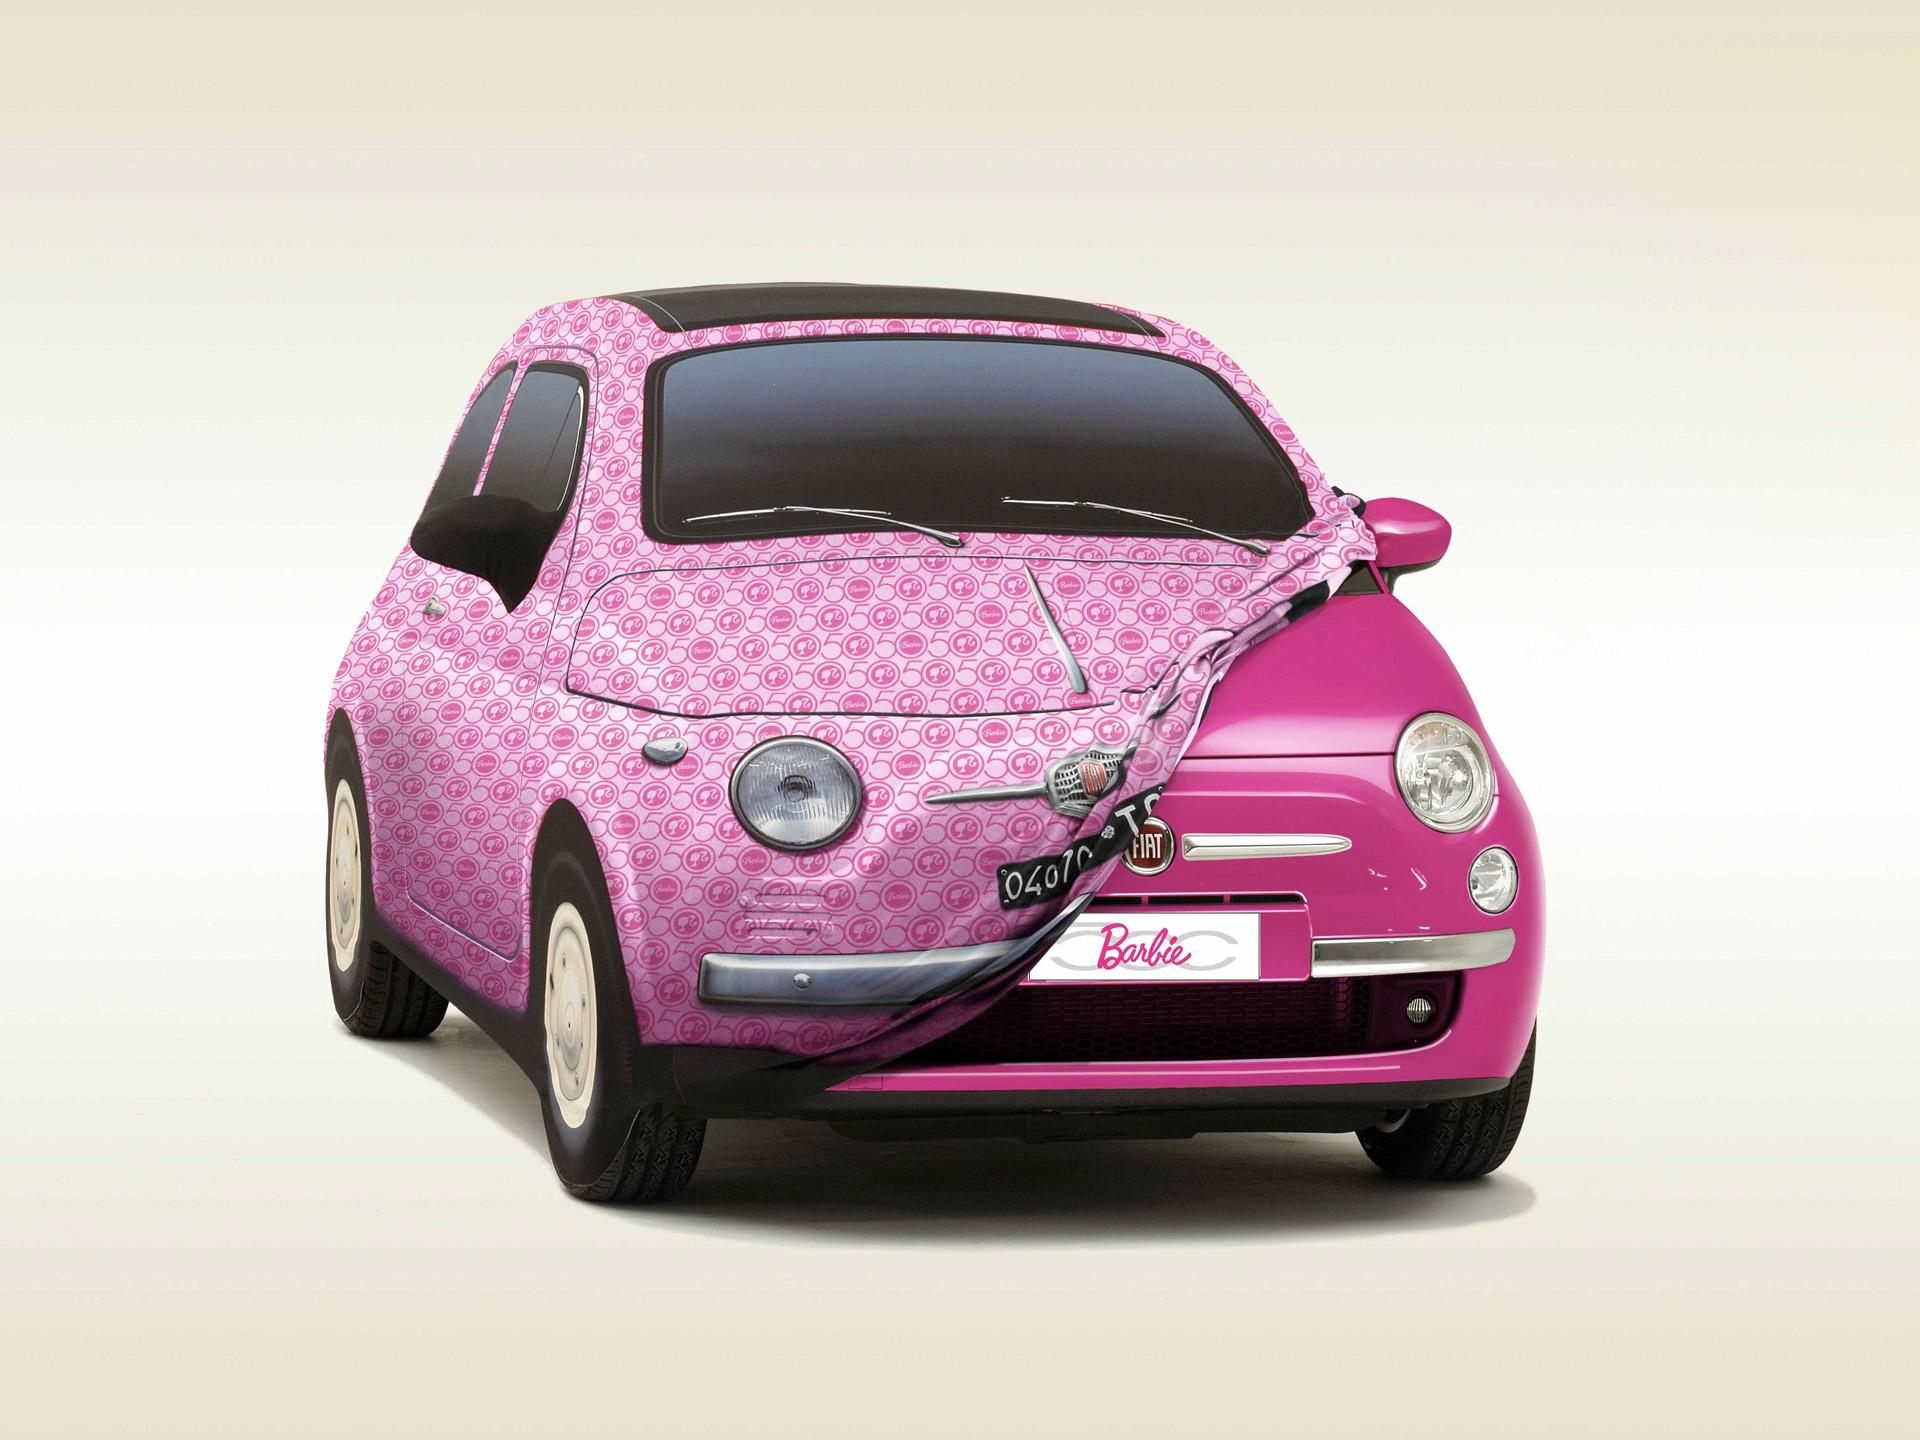 2009 fiat 500 barbie edition. Black Bedroom Furniture Sets. Home Design Ideas